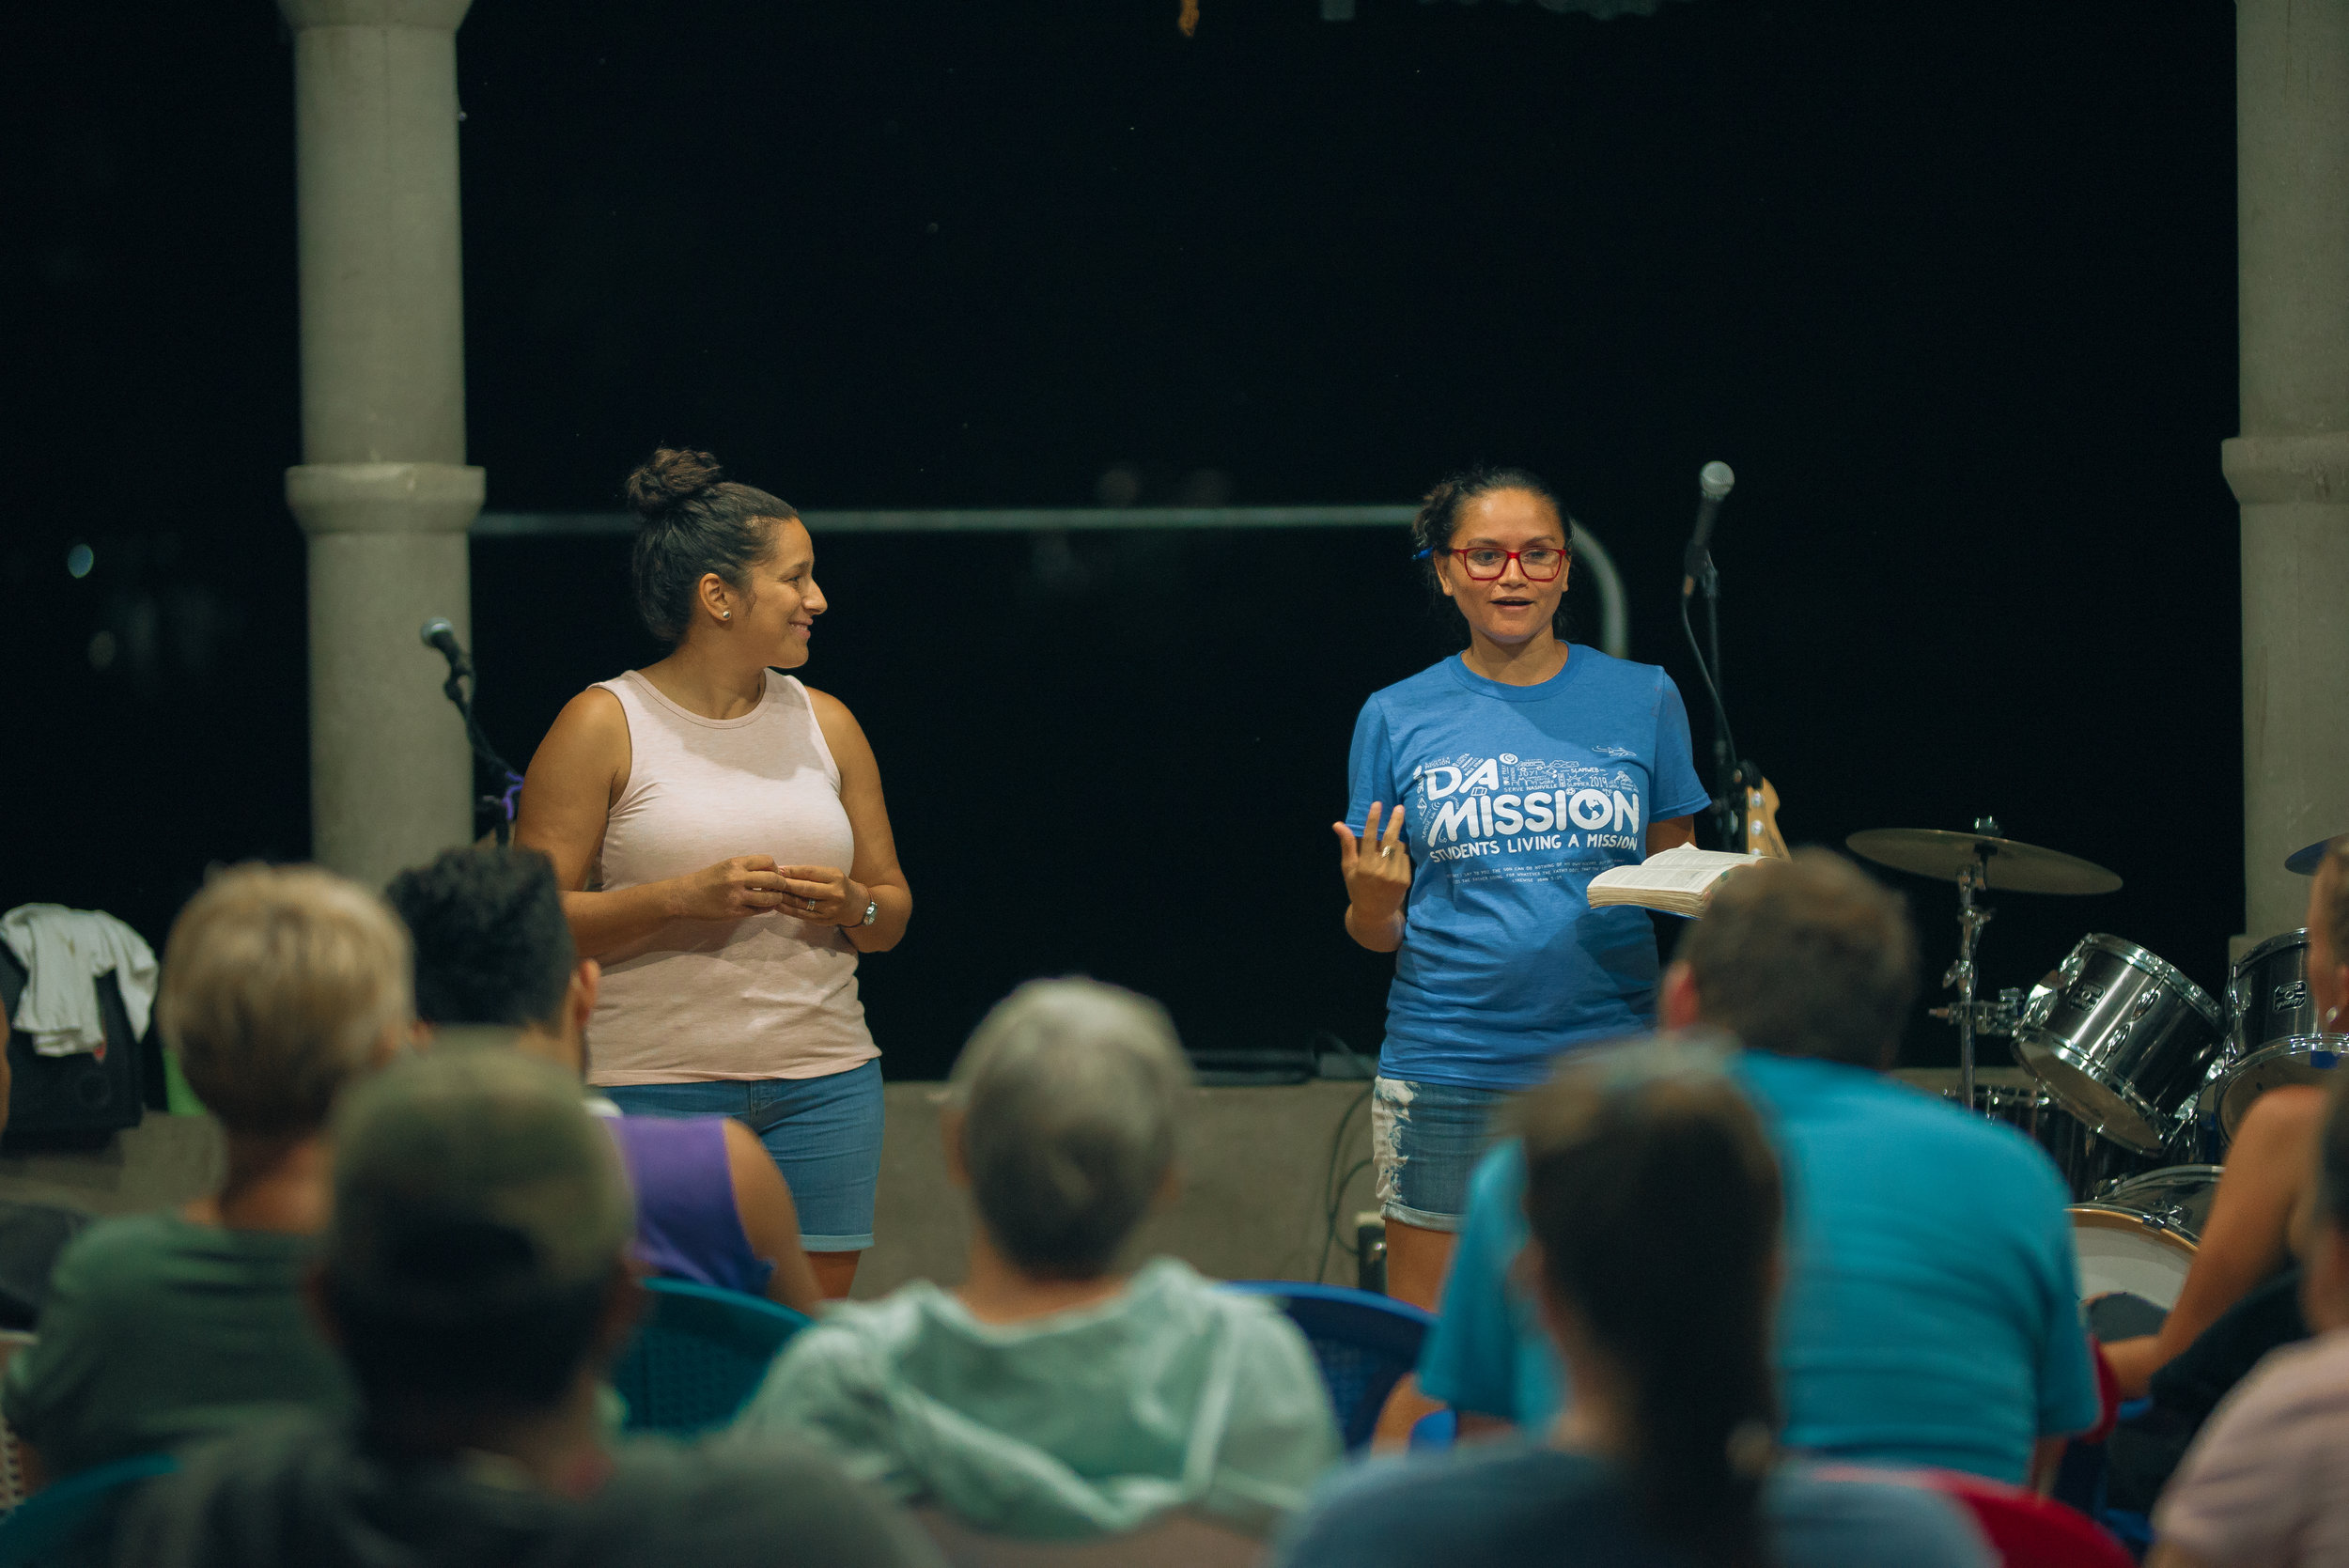 Back at campus, Lorena (R) translated by team member Ninfa Parker (L) shares the story of how she came to work with GOD Int'l. She testifies of  her search to deeply study God's word that led her to us.